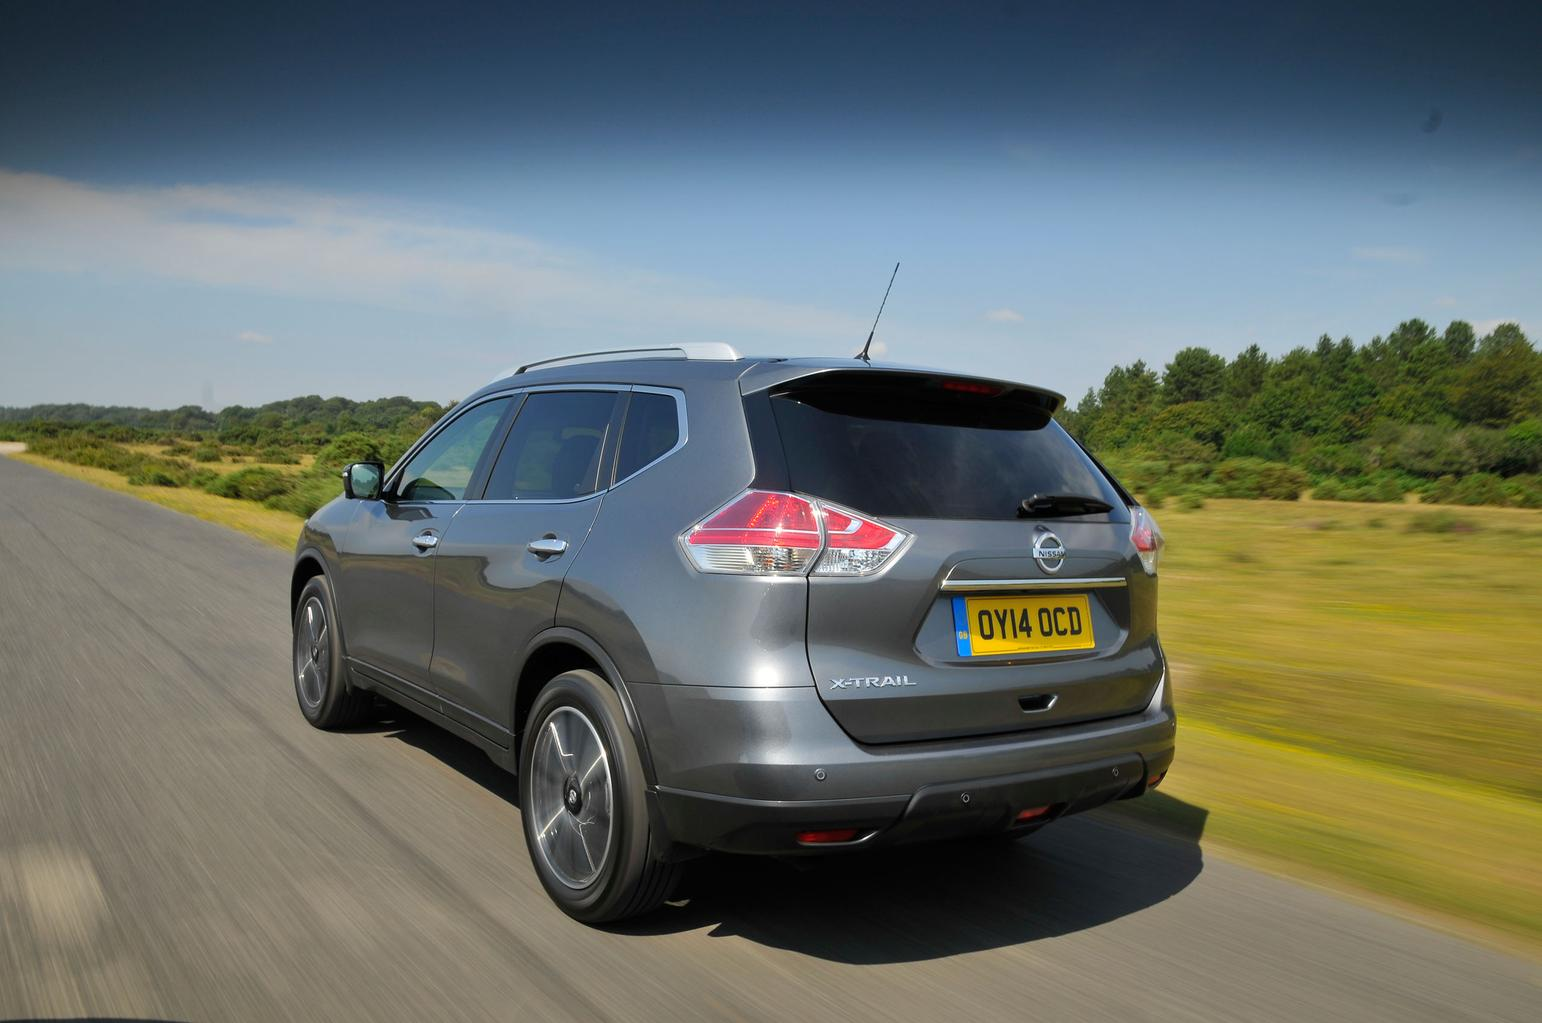 7 reasons to buy a Nissan X-Trail